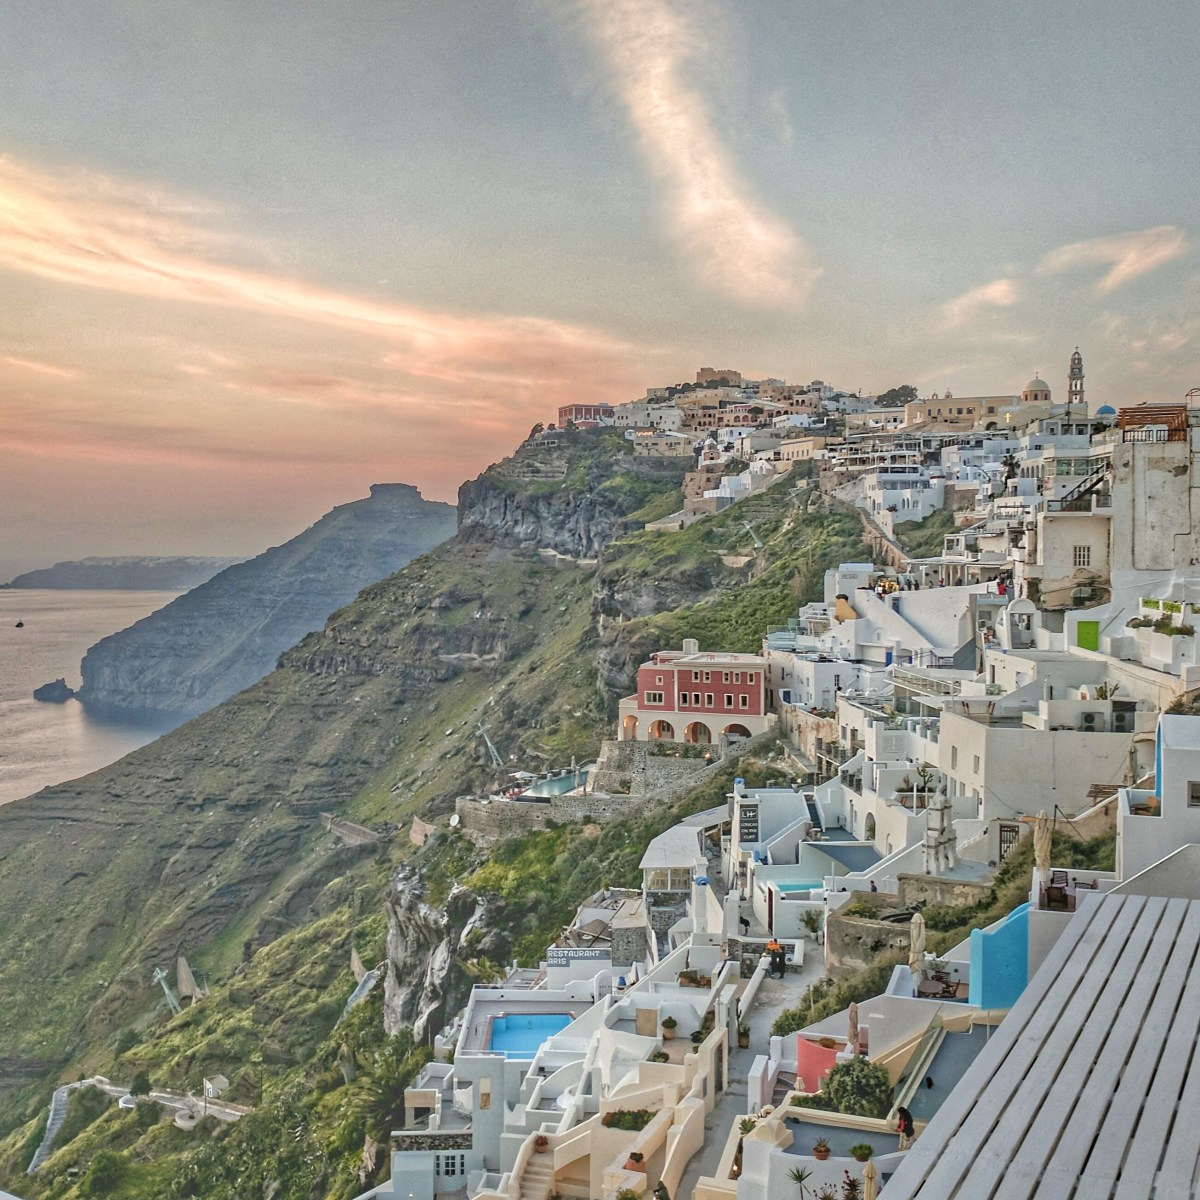 Thira looks beautiful as sunset if you manage to stay away from the crowds.